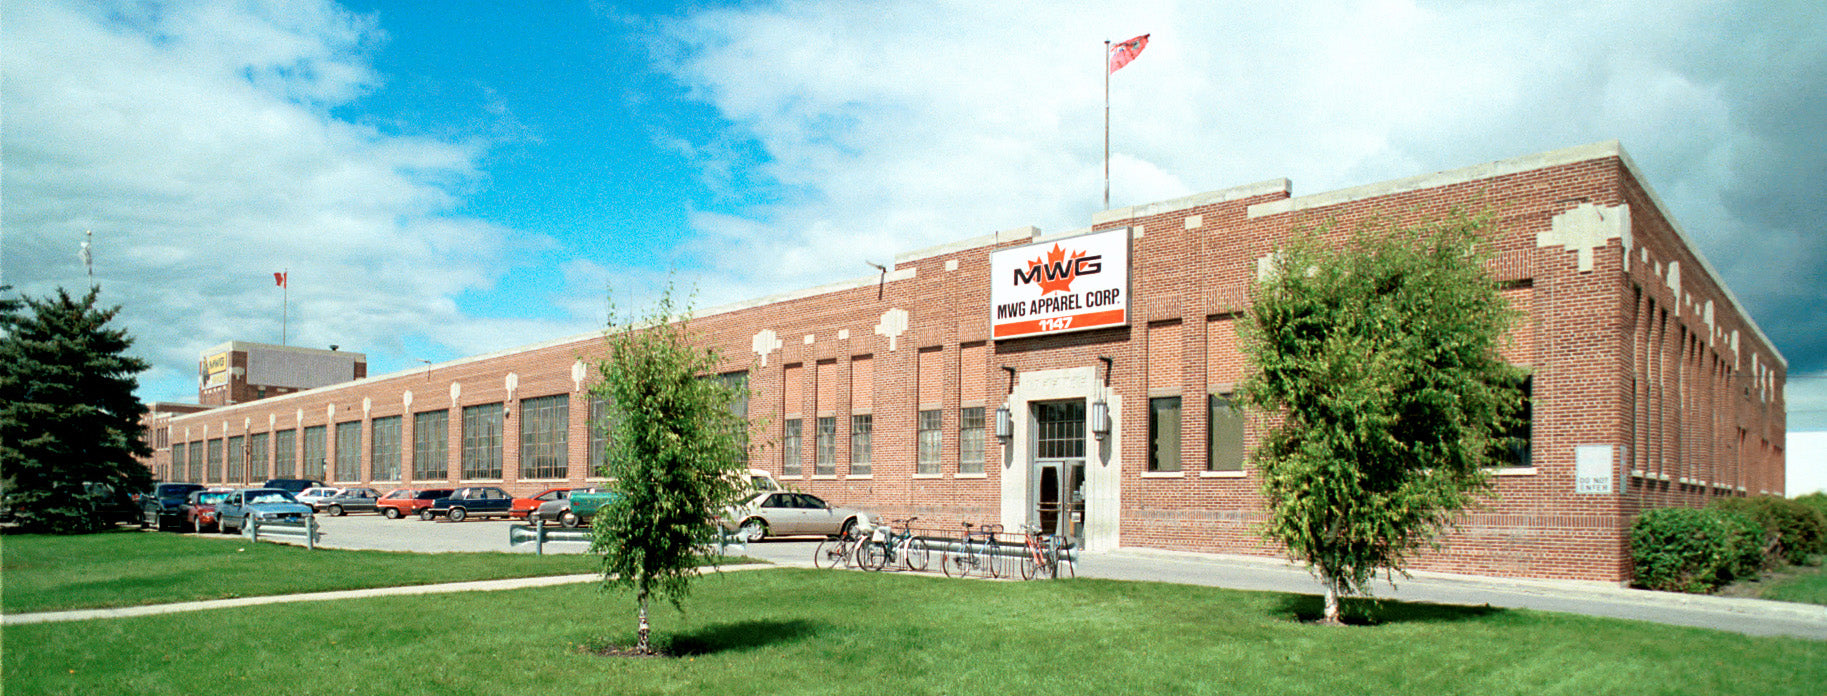 MWG specializes in technical design, development and custom manufacturing of technical flame resistant workwear products